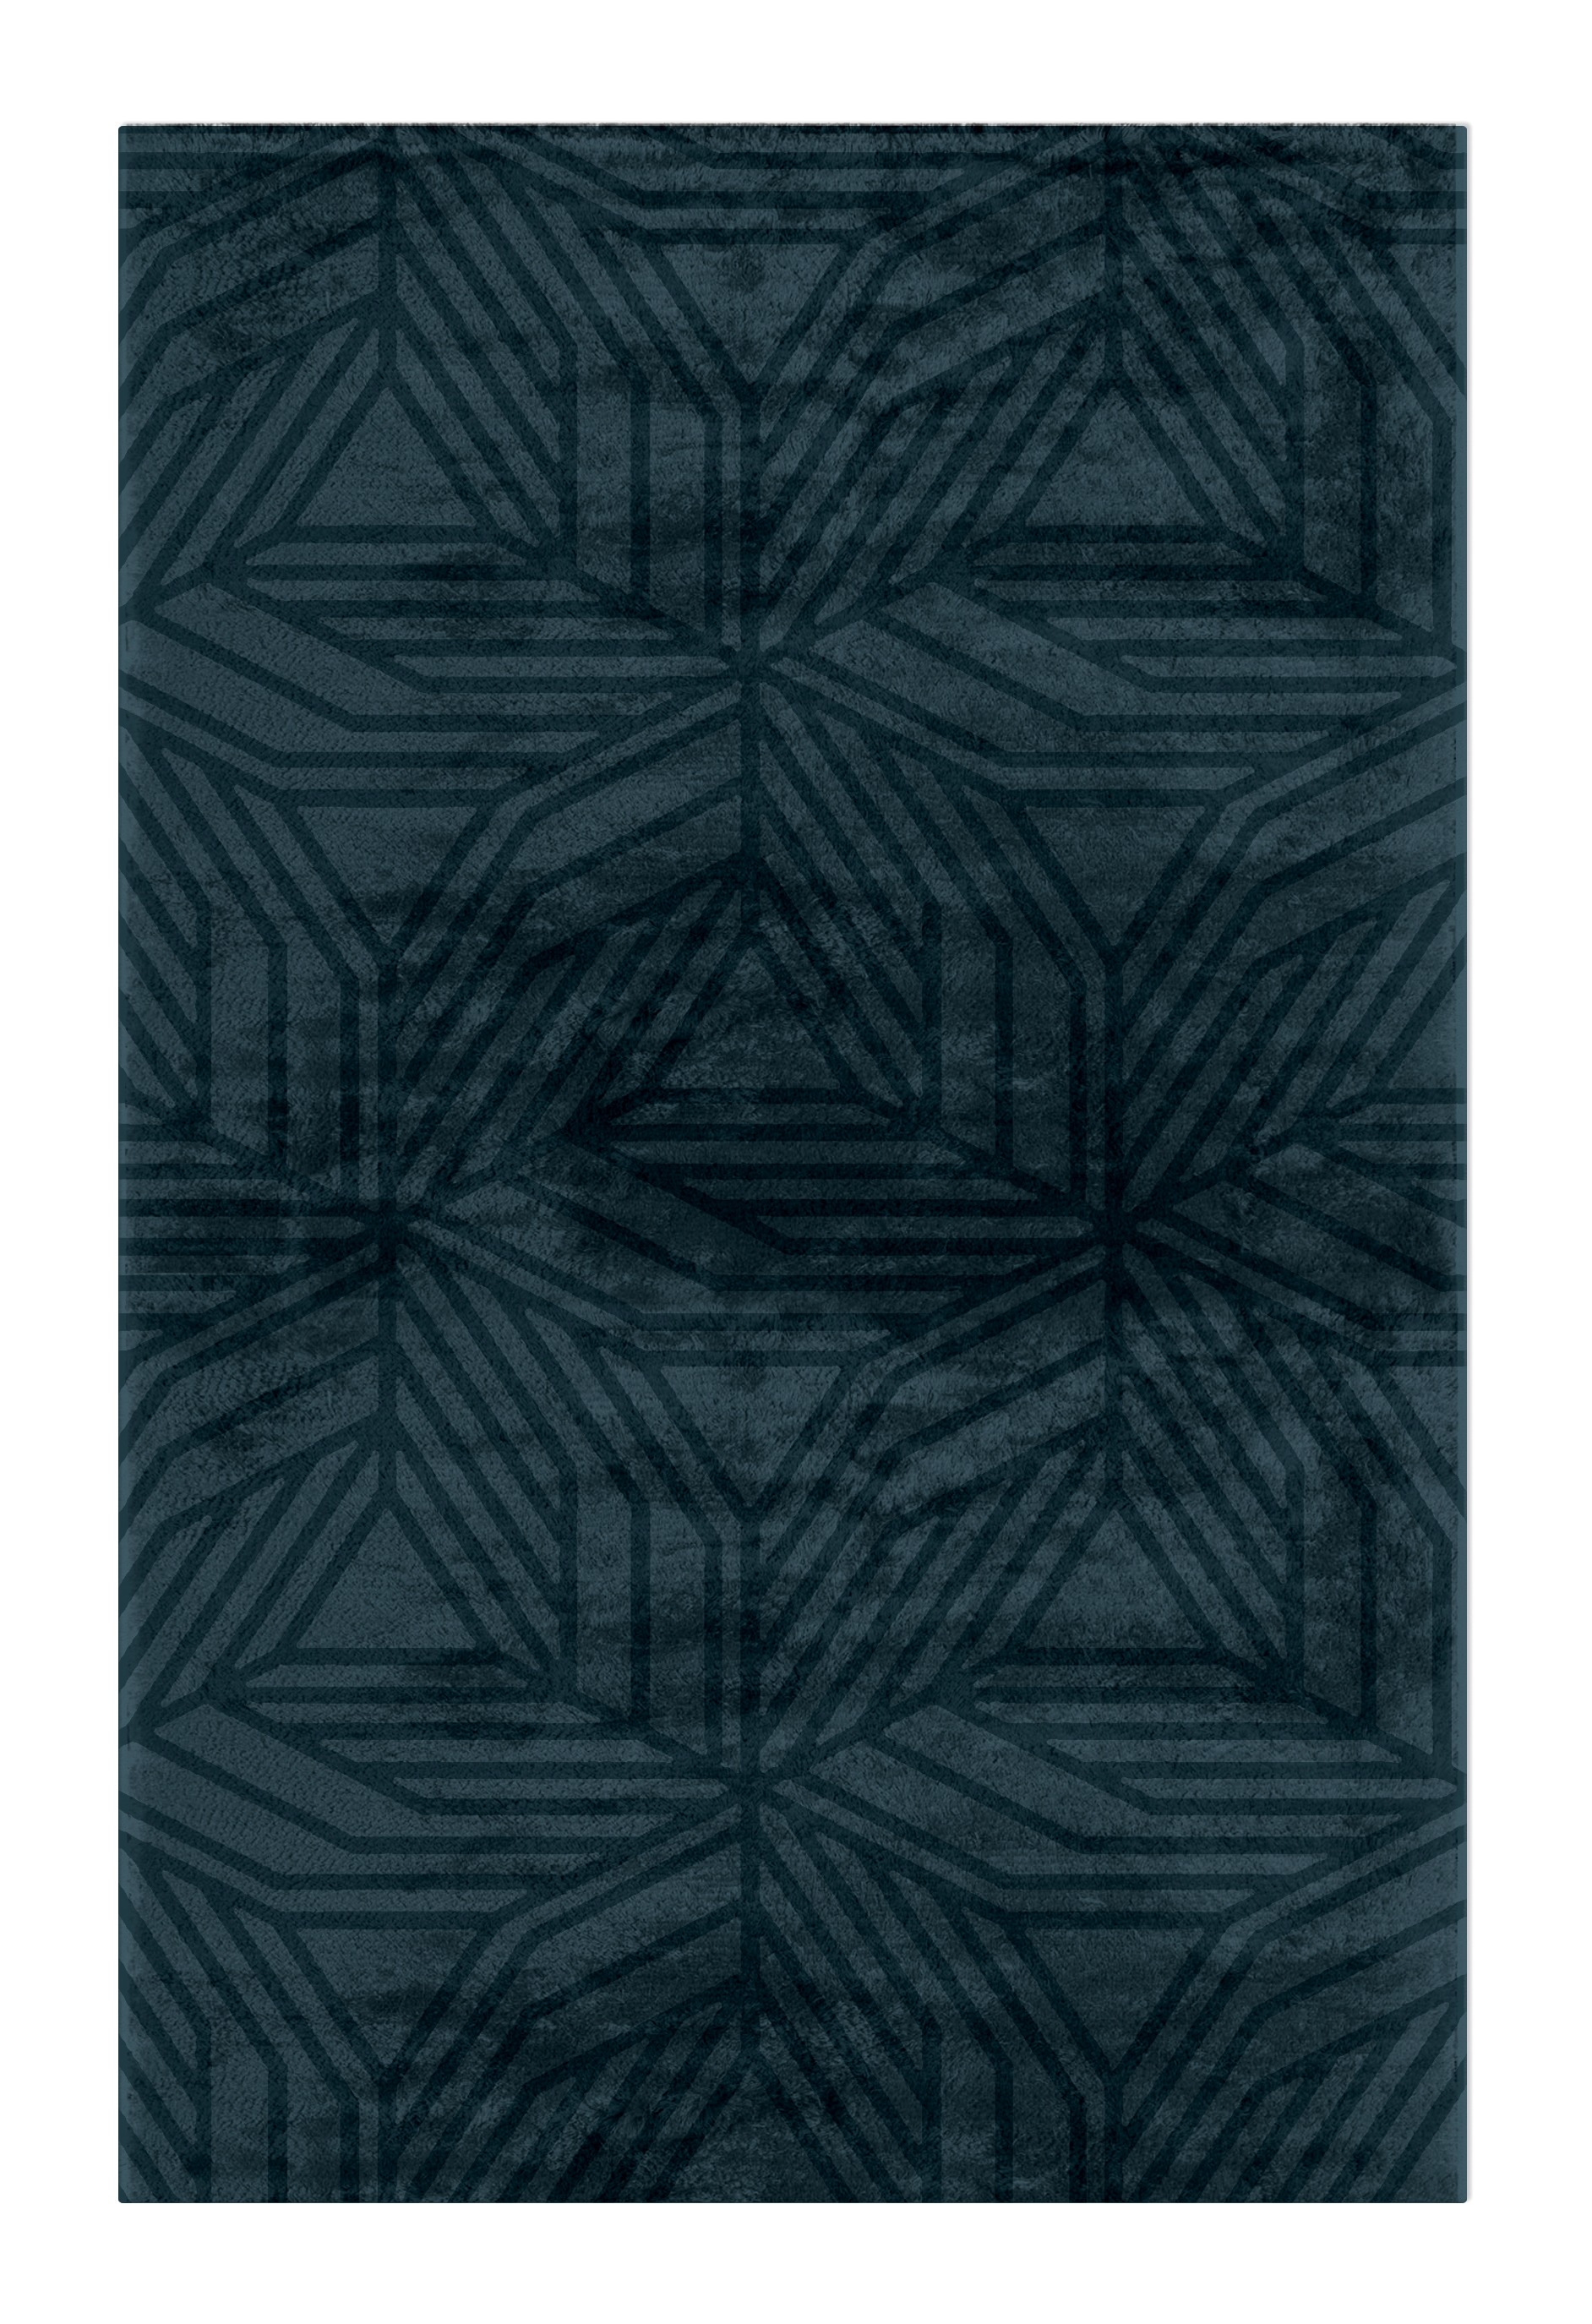 Blue Inspirations: The Tranquility Into Your Home blue Blue Inspirations: The Tranquility Into Your Home kaiwa rug